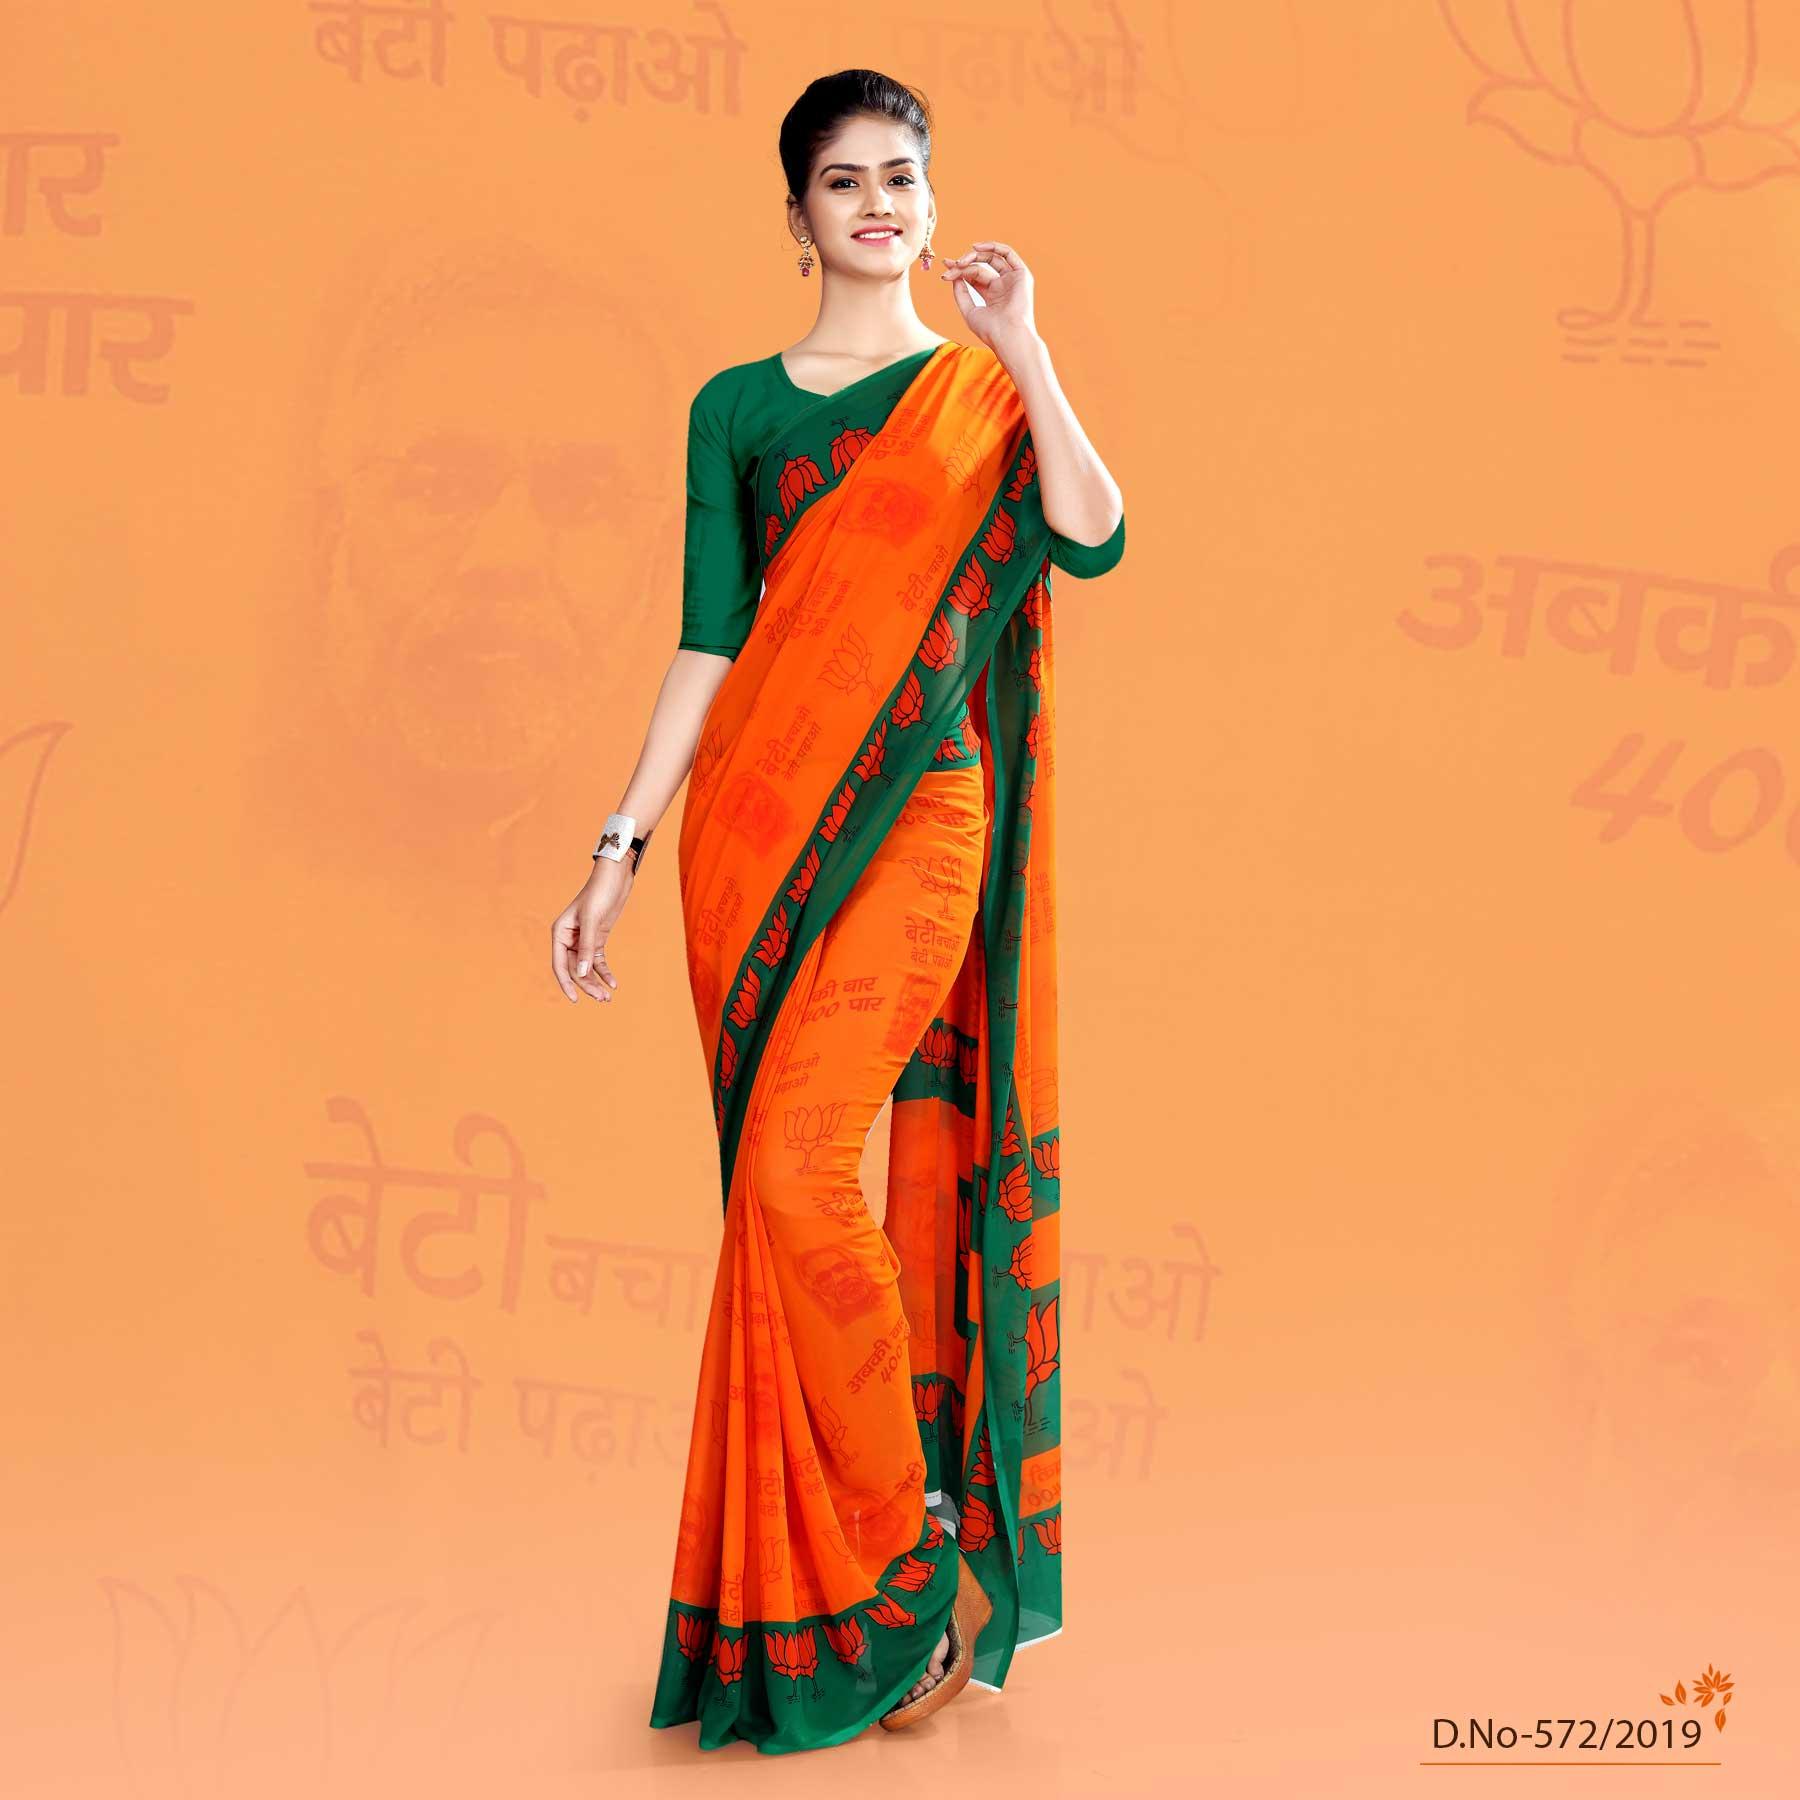 Saffron and green bjp namo uniform sarees